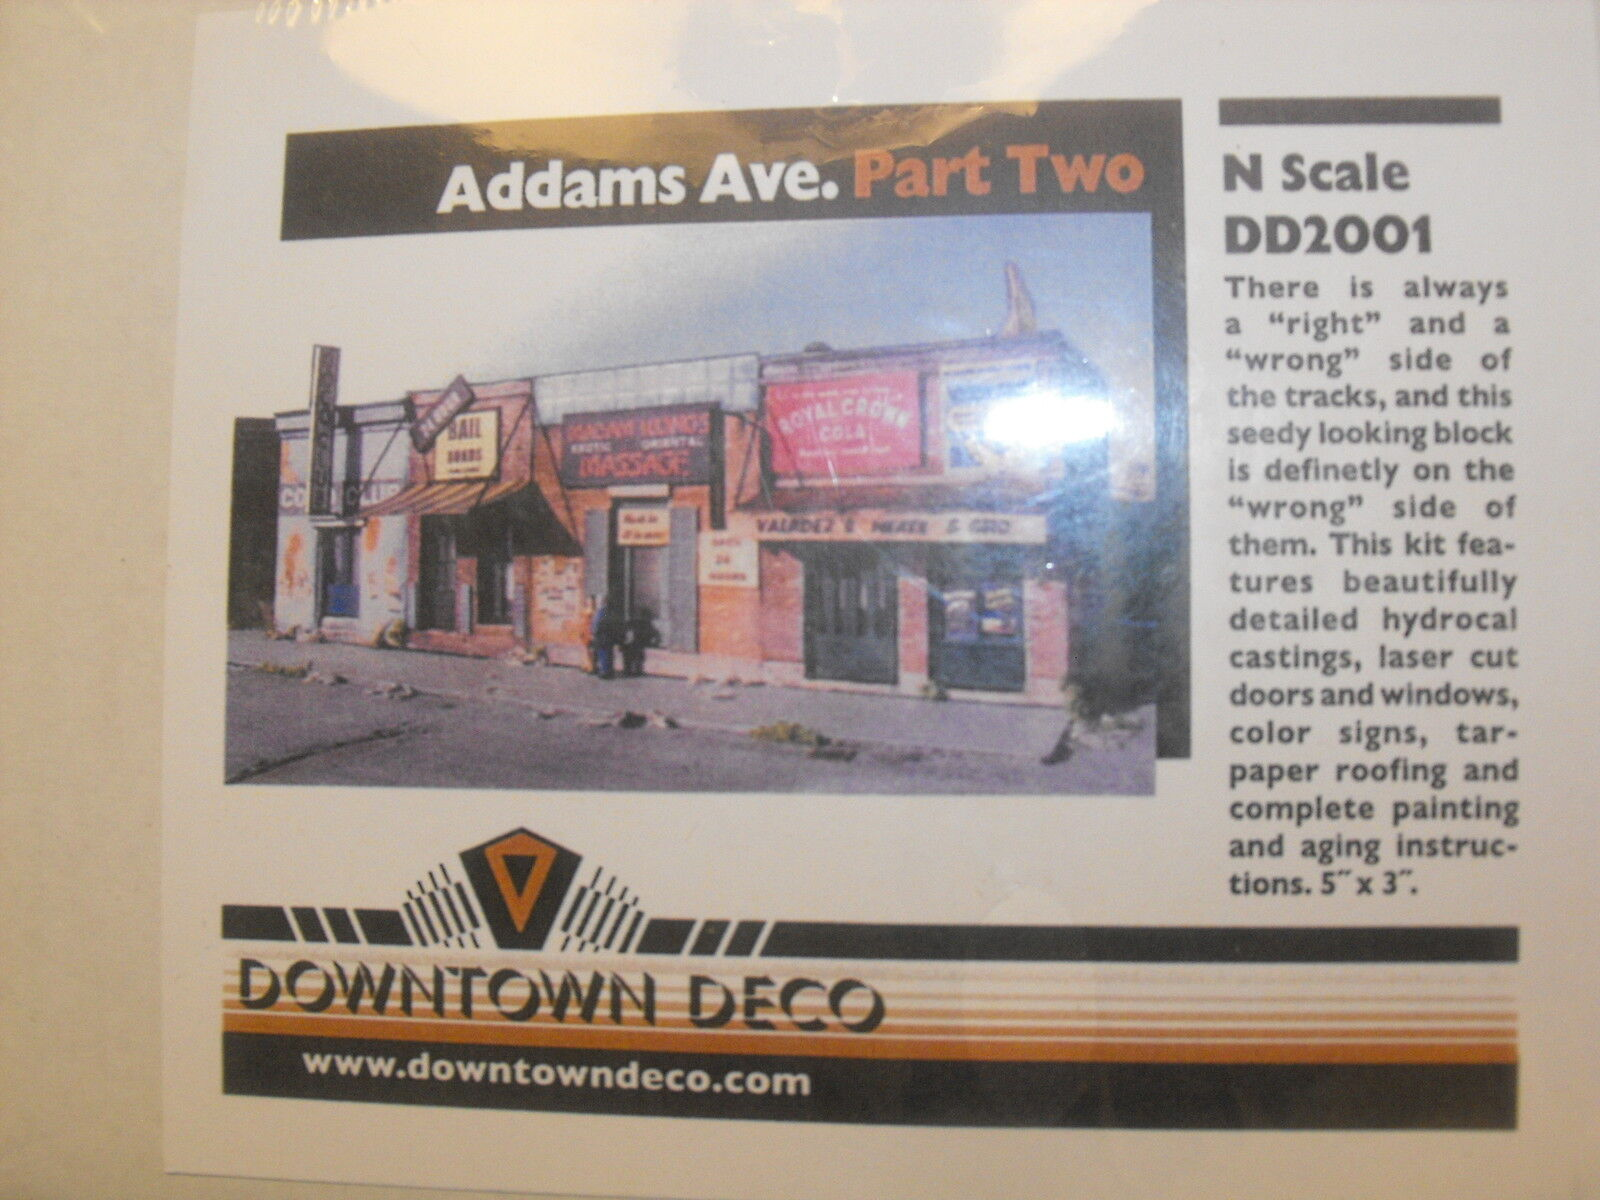 N SCALE DOWNTOWN DECO ADAMS AVE. PART TWO DD 2001